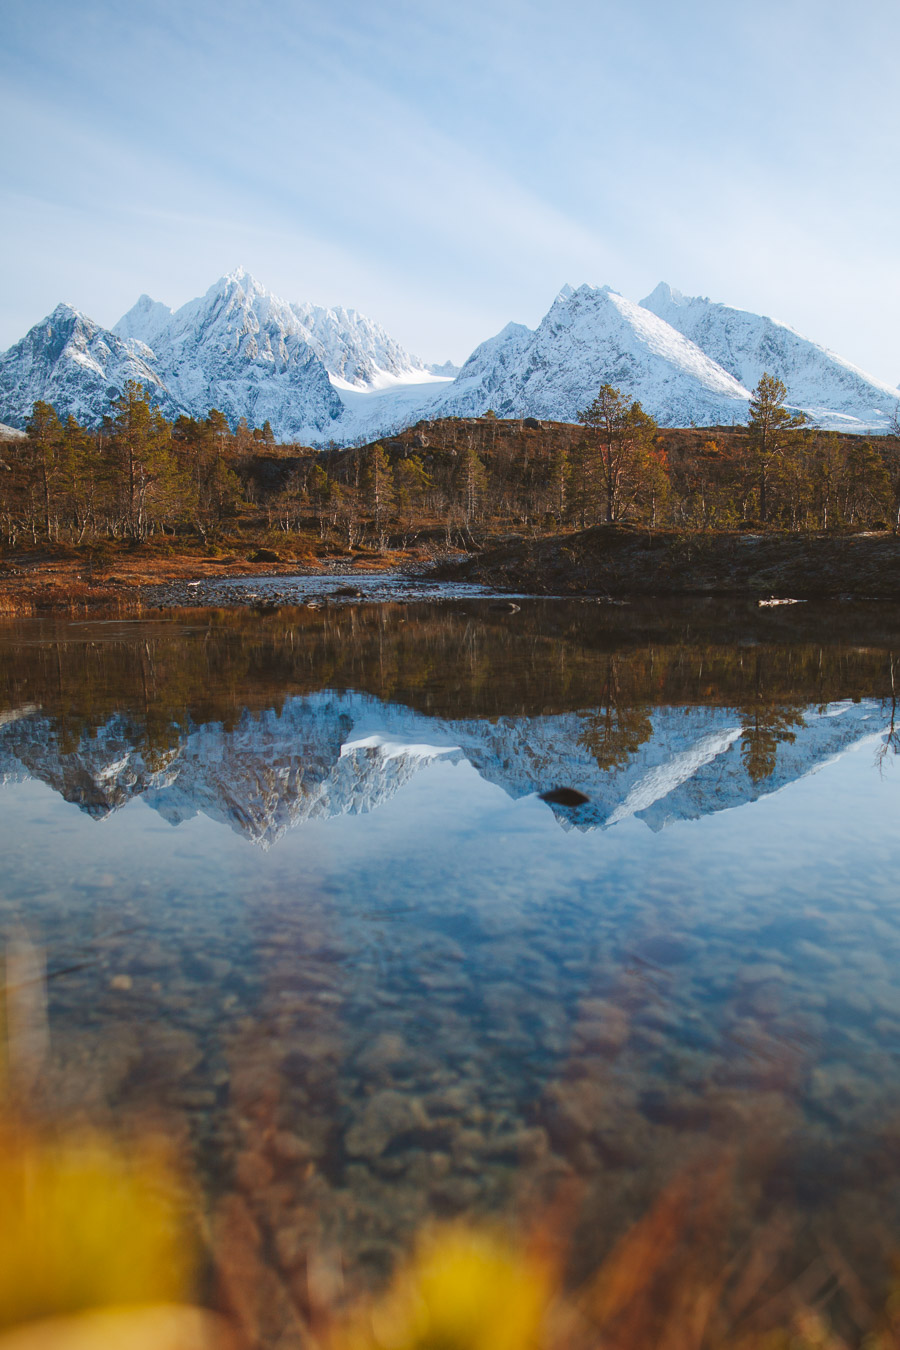 Mountains reflected in the river